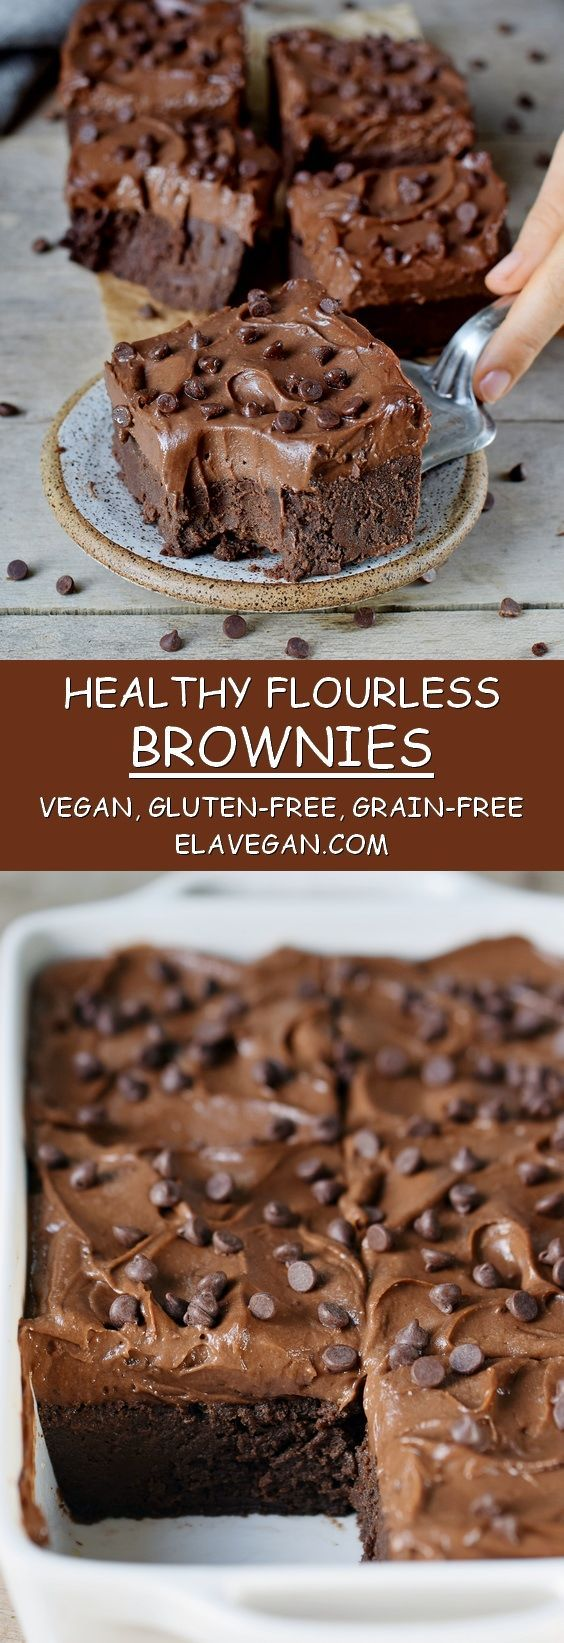 These flourless brownies with a sweet potato frosting are absolutely delectable. They are vegan, gl